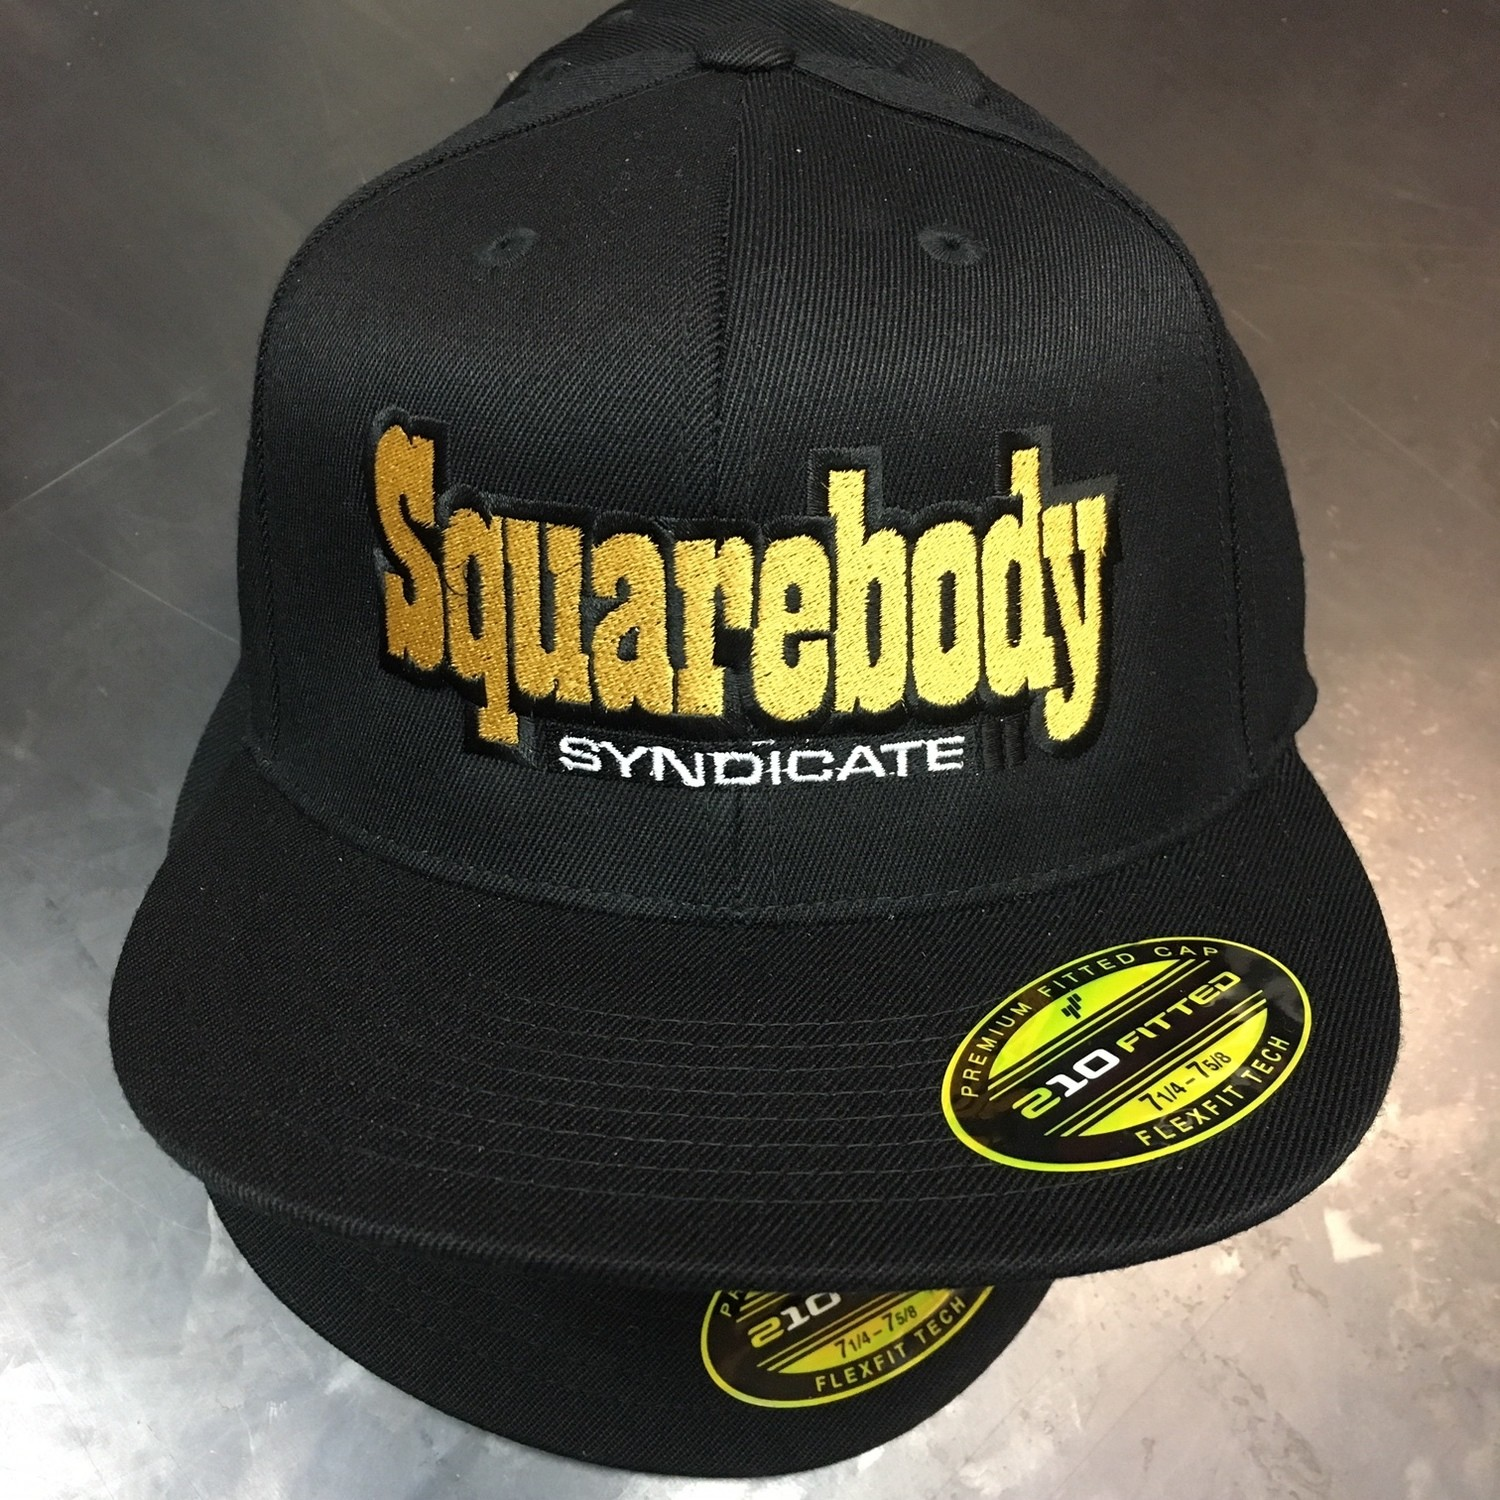 THE OG FLEXFIT 210 SBS SYNDICATE 2 LOGO BLACK HAT